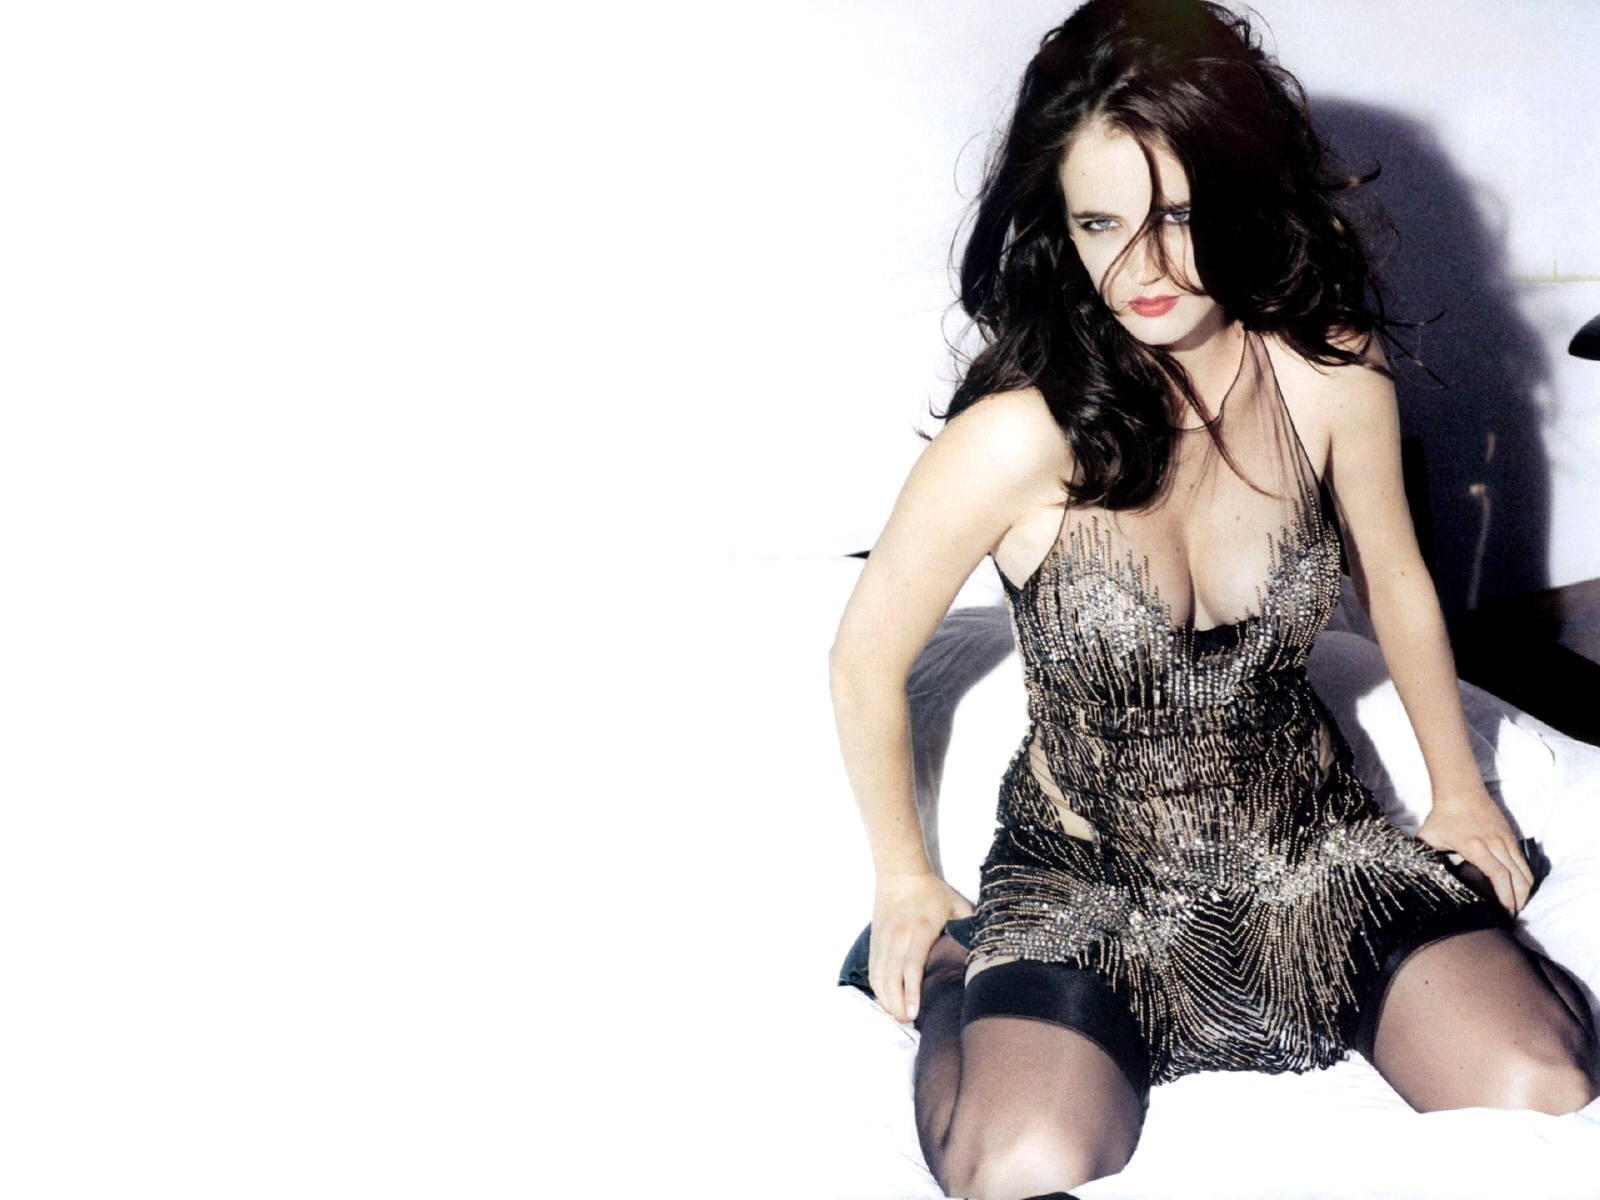 Wallpaper di Eva Green in lingerie grigia